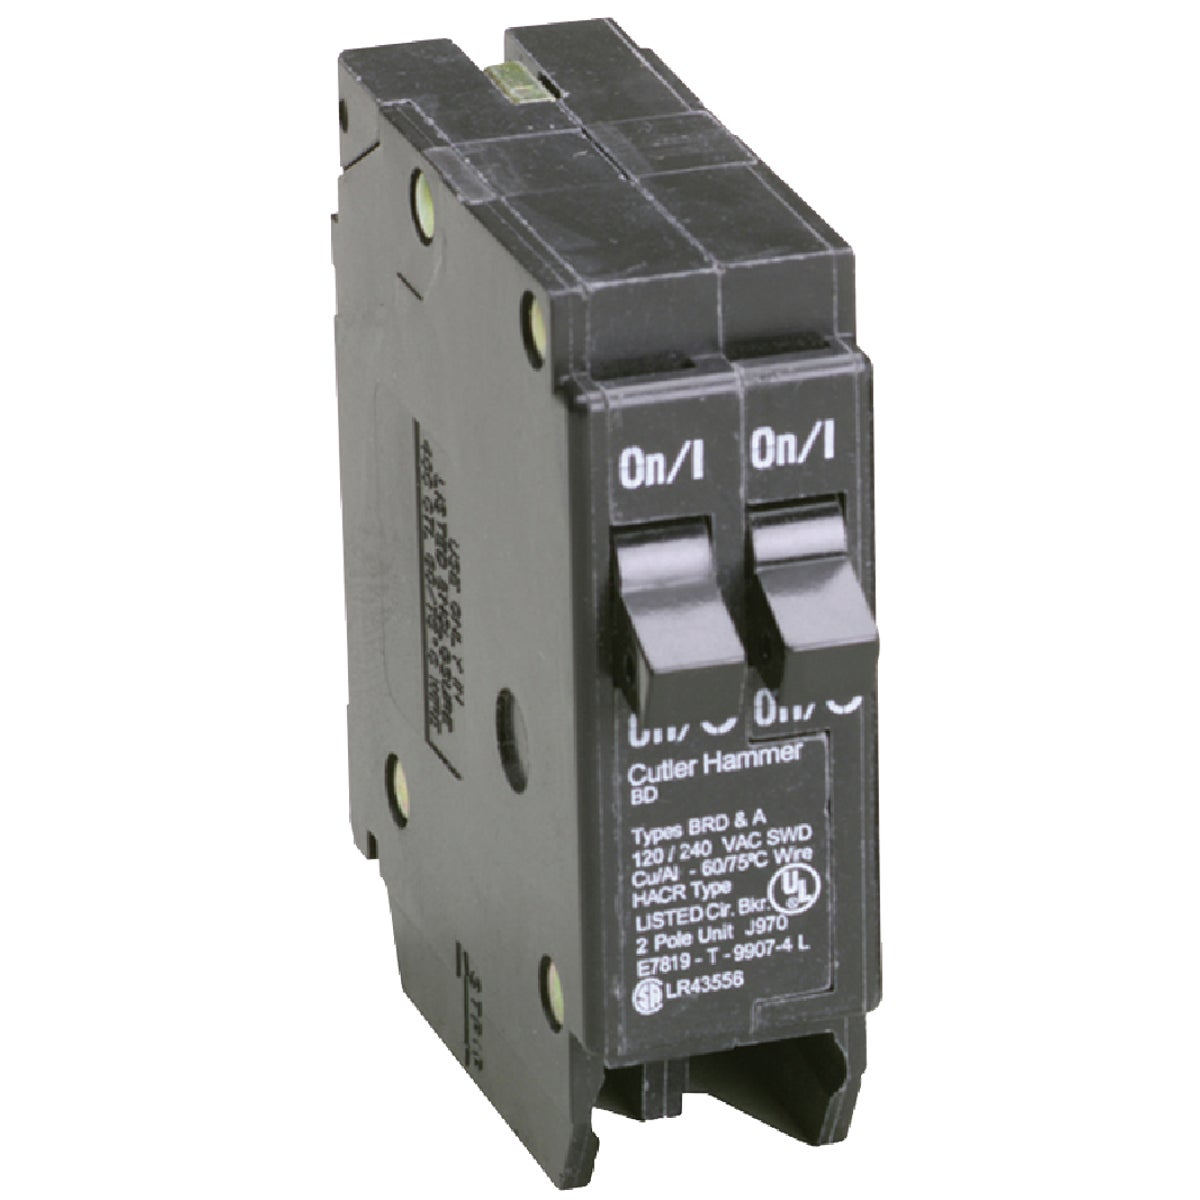 15A/15A CIRCUIT BREAKER - BD1515 by Eaton Corporation